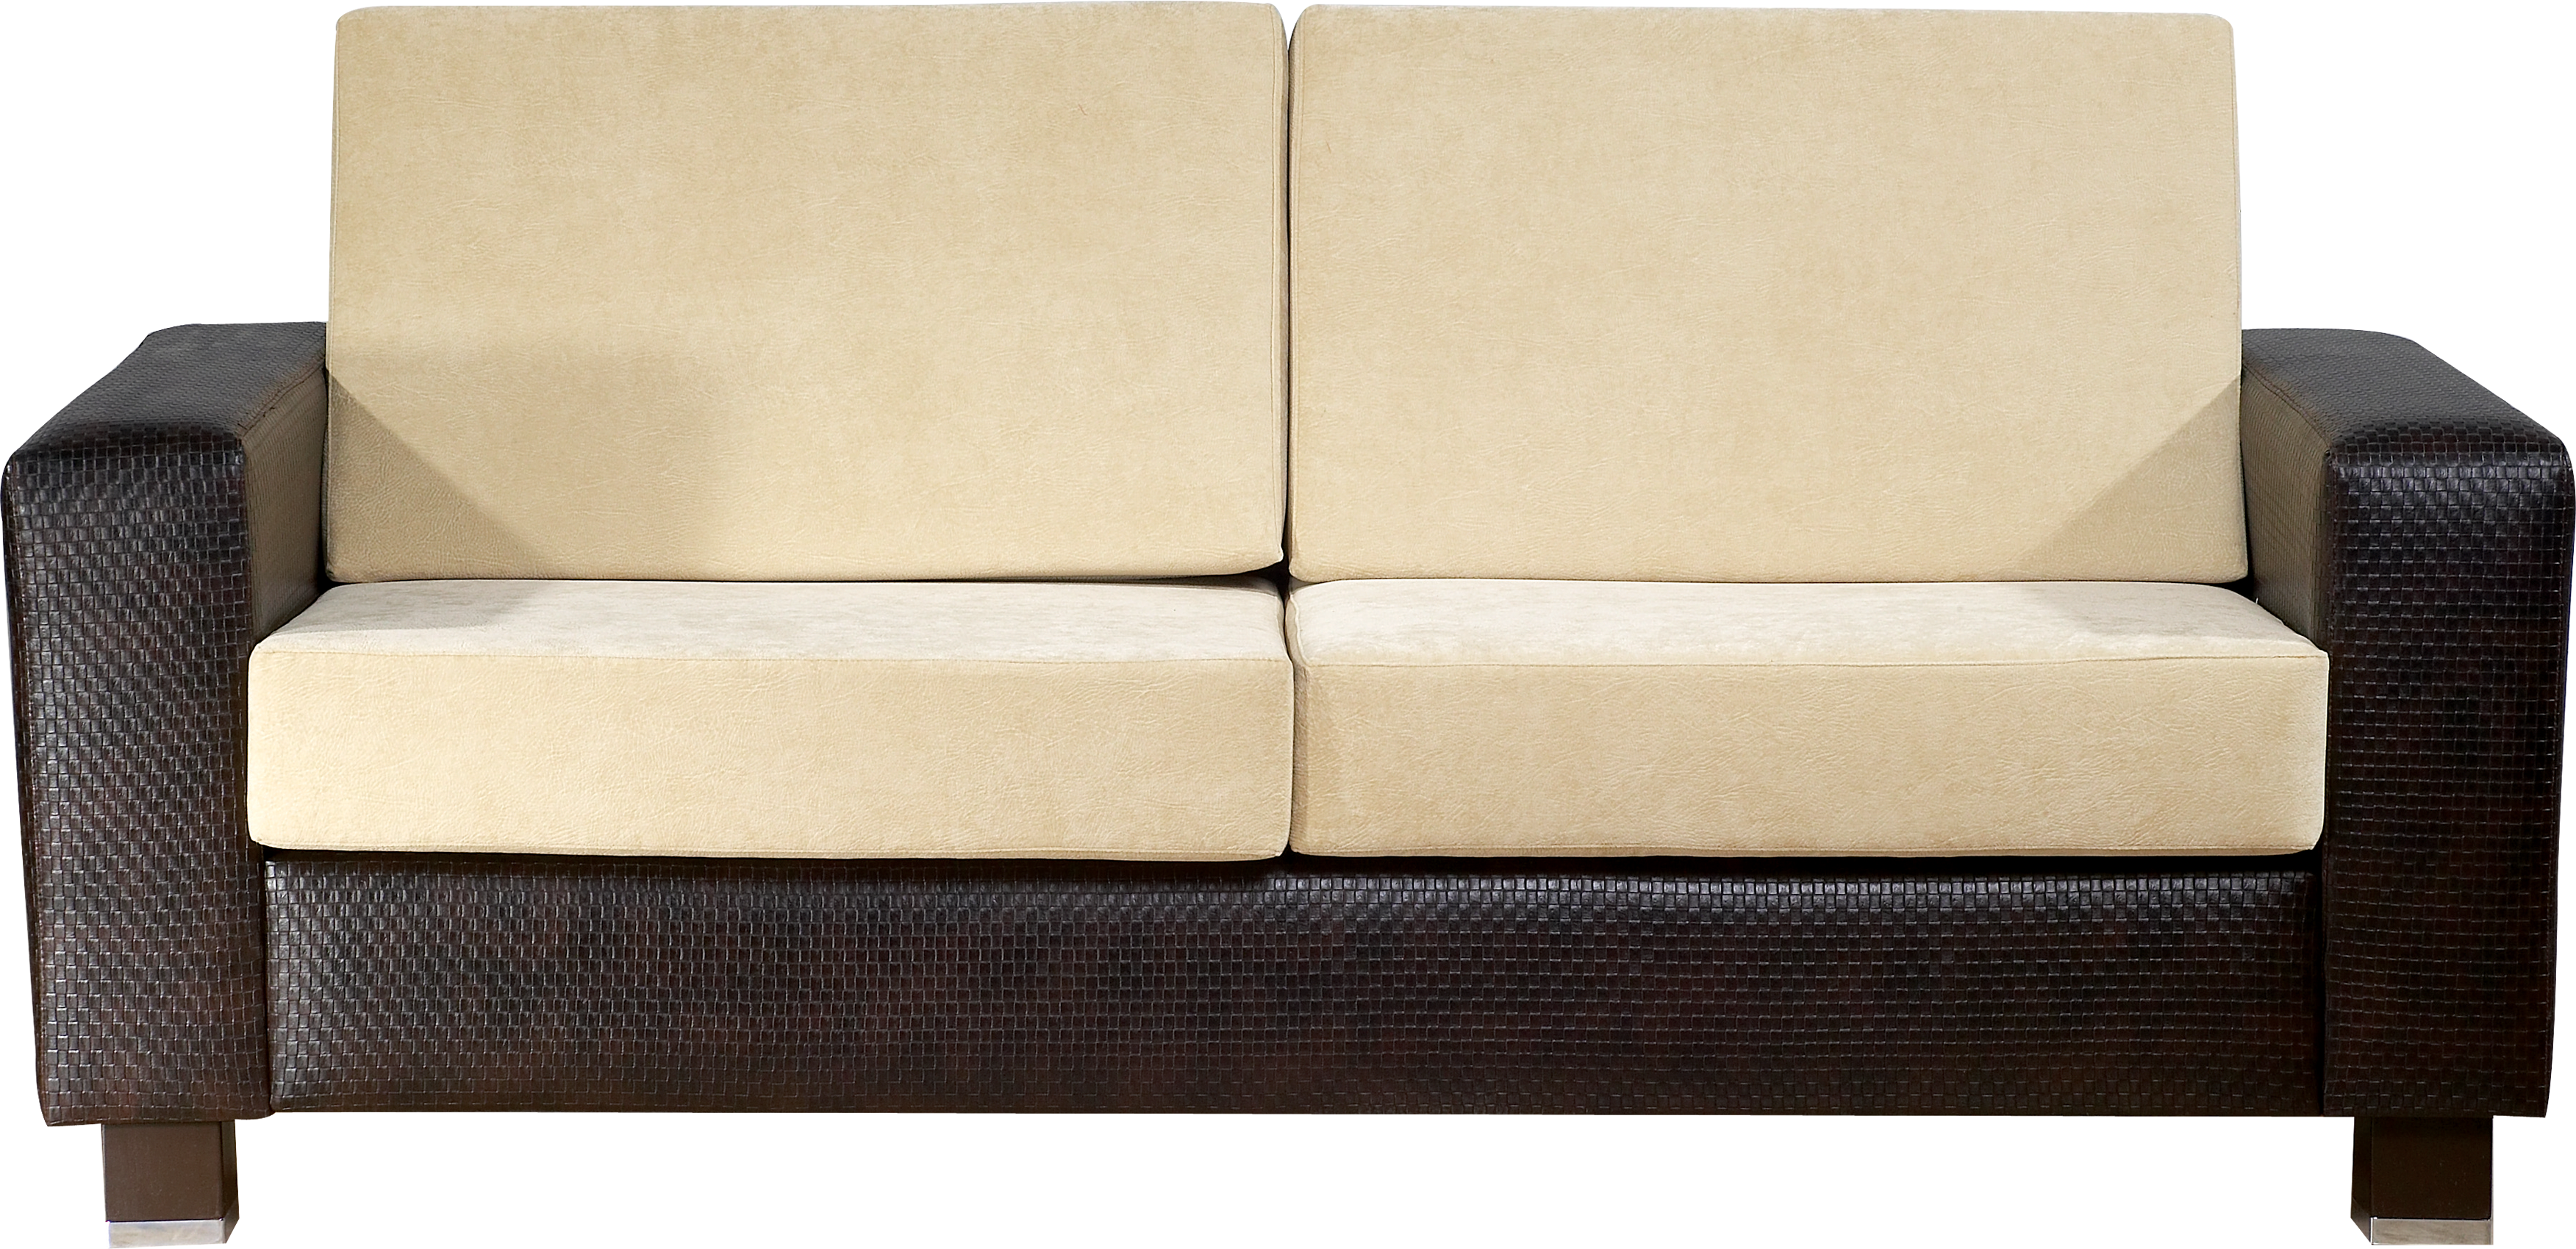 Black and white modern Sofa PNG Image